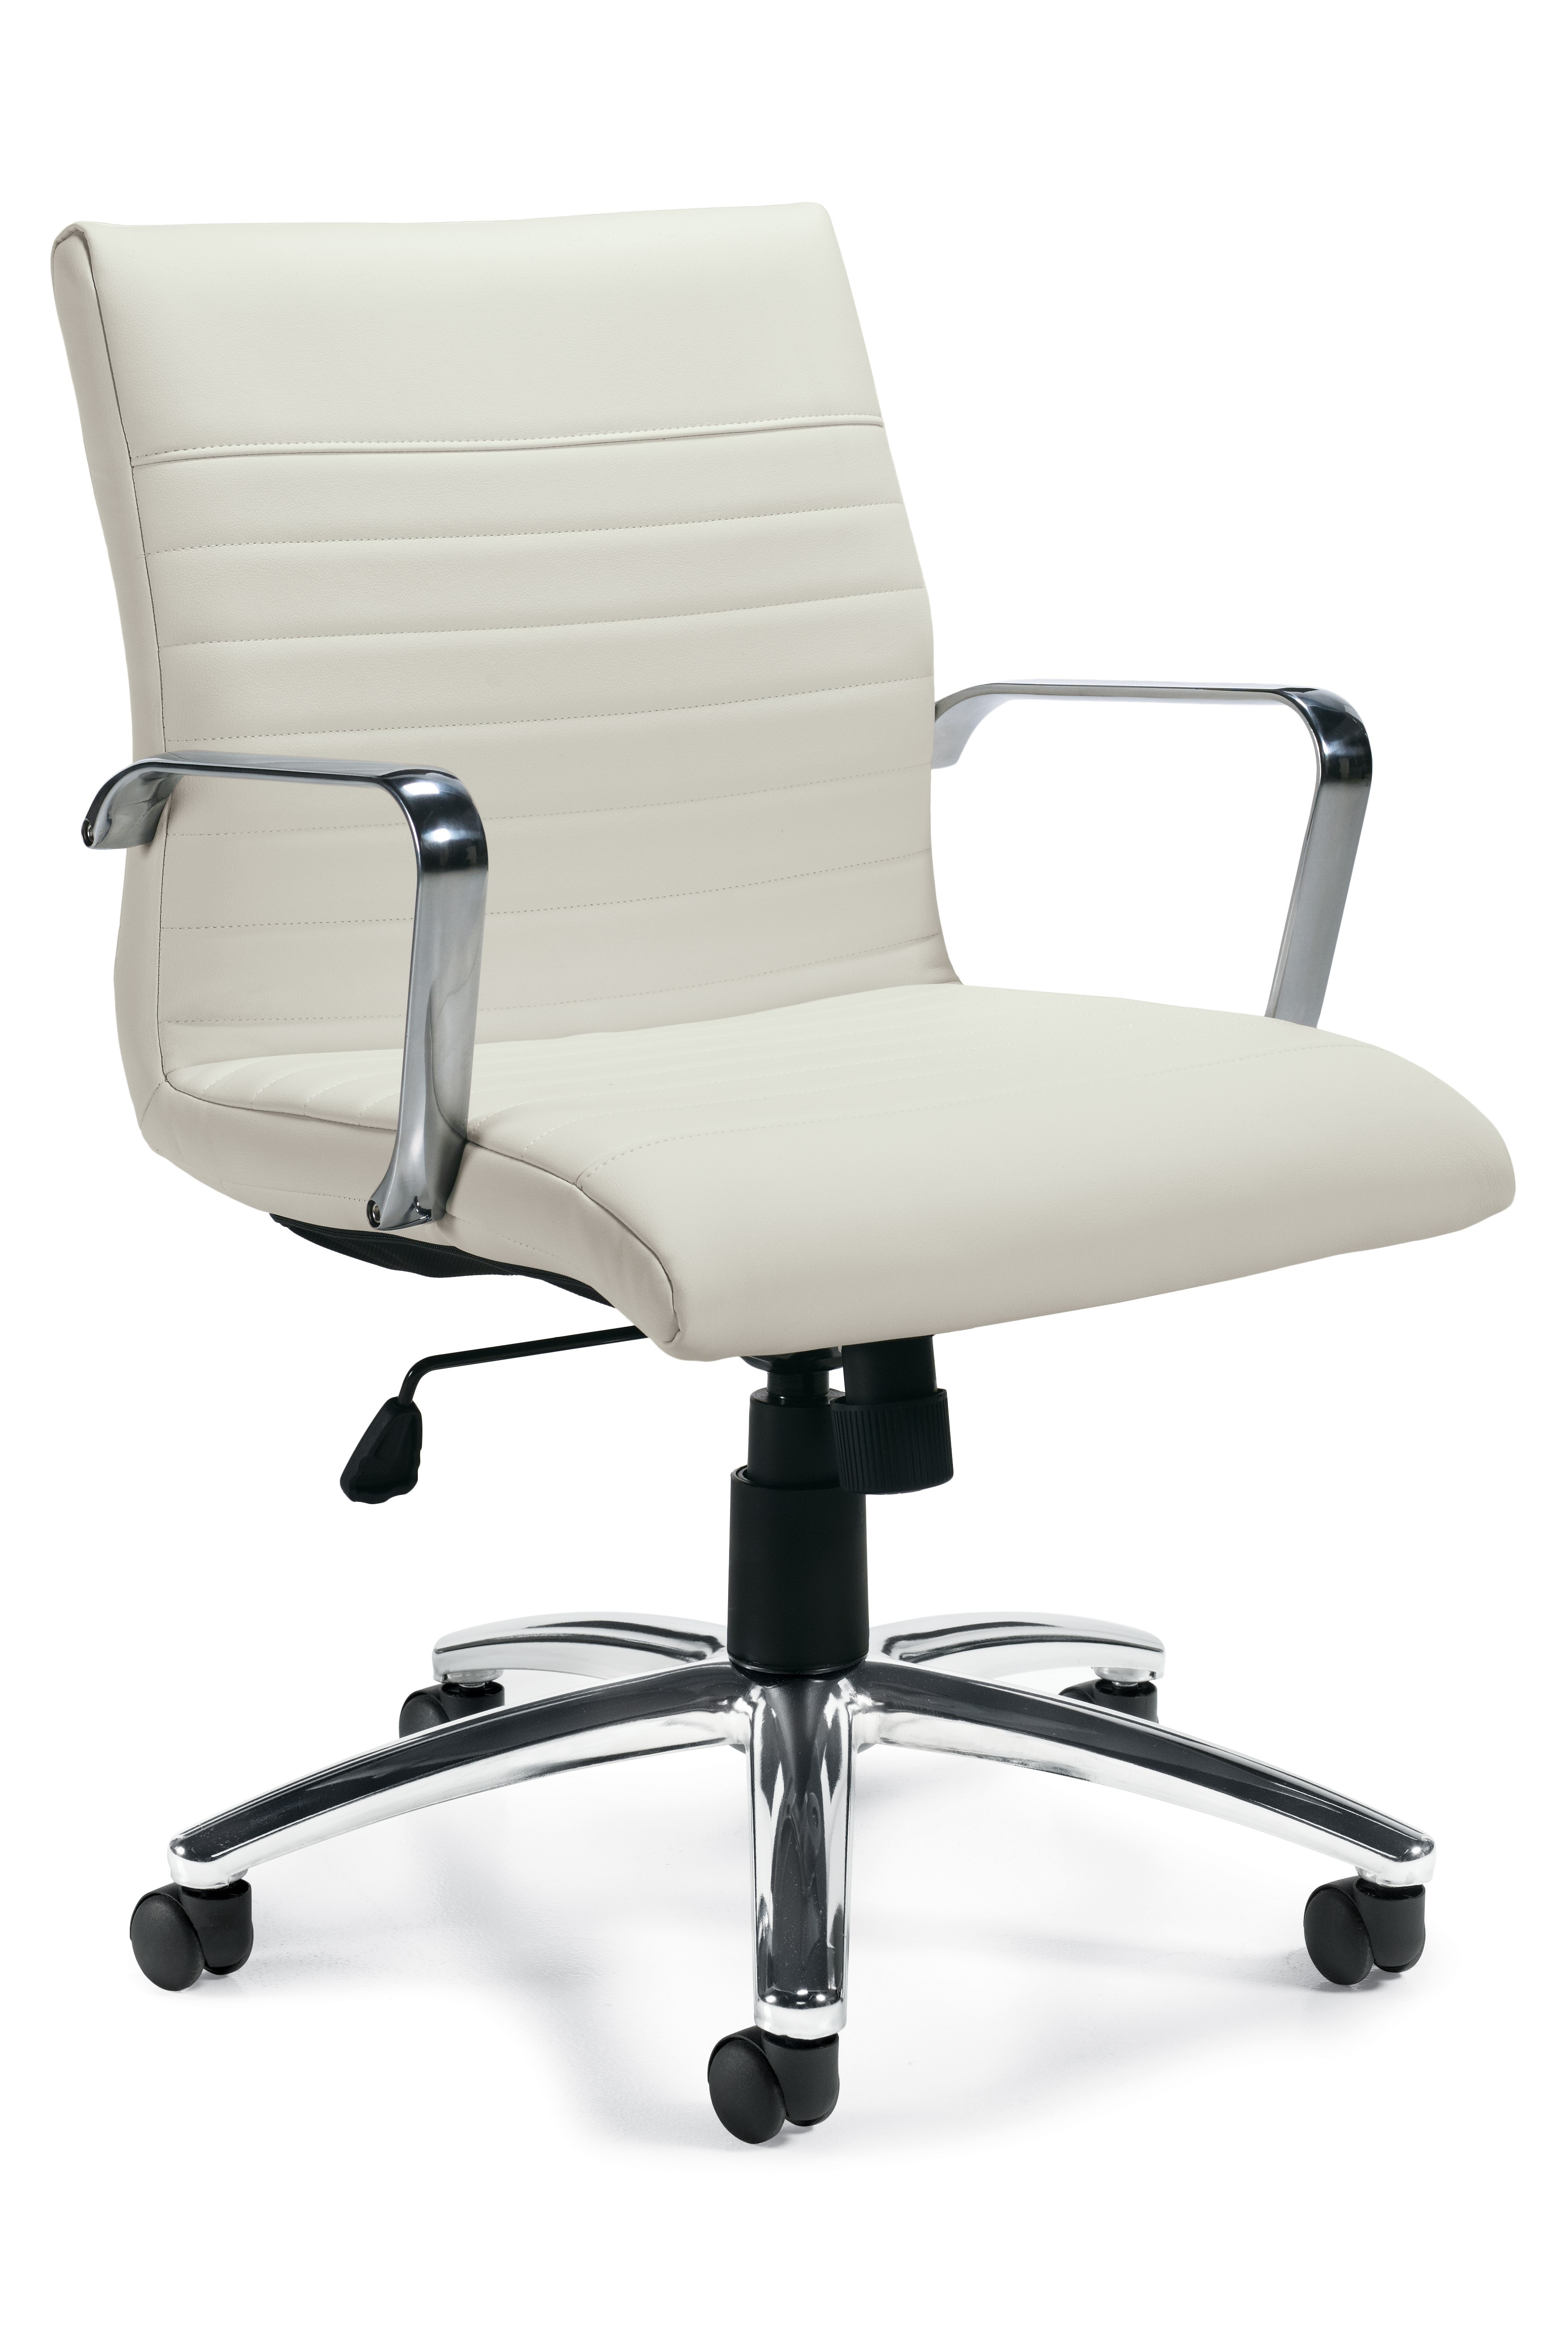 Conference Chair 4